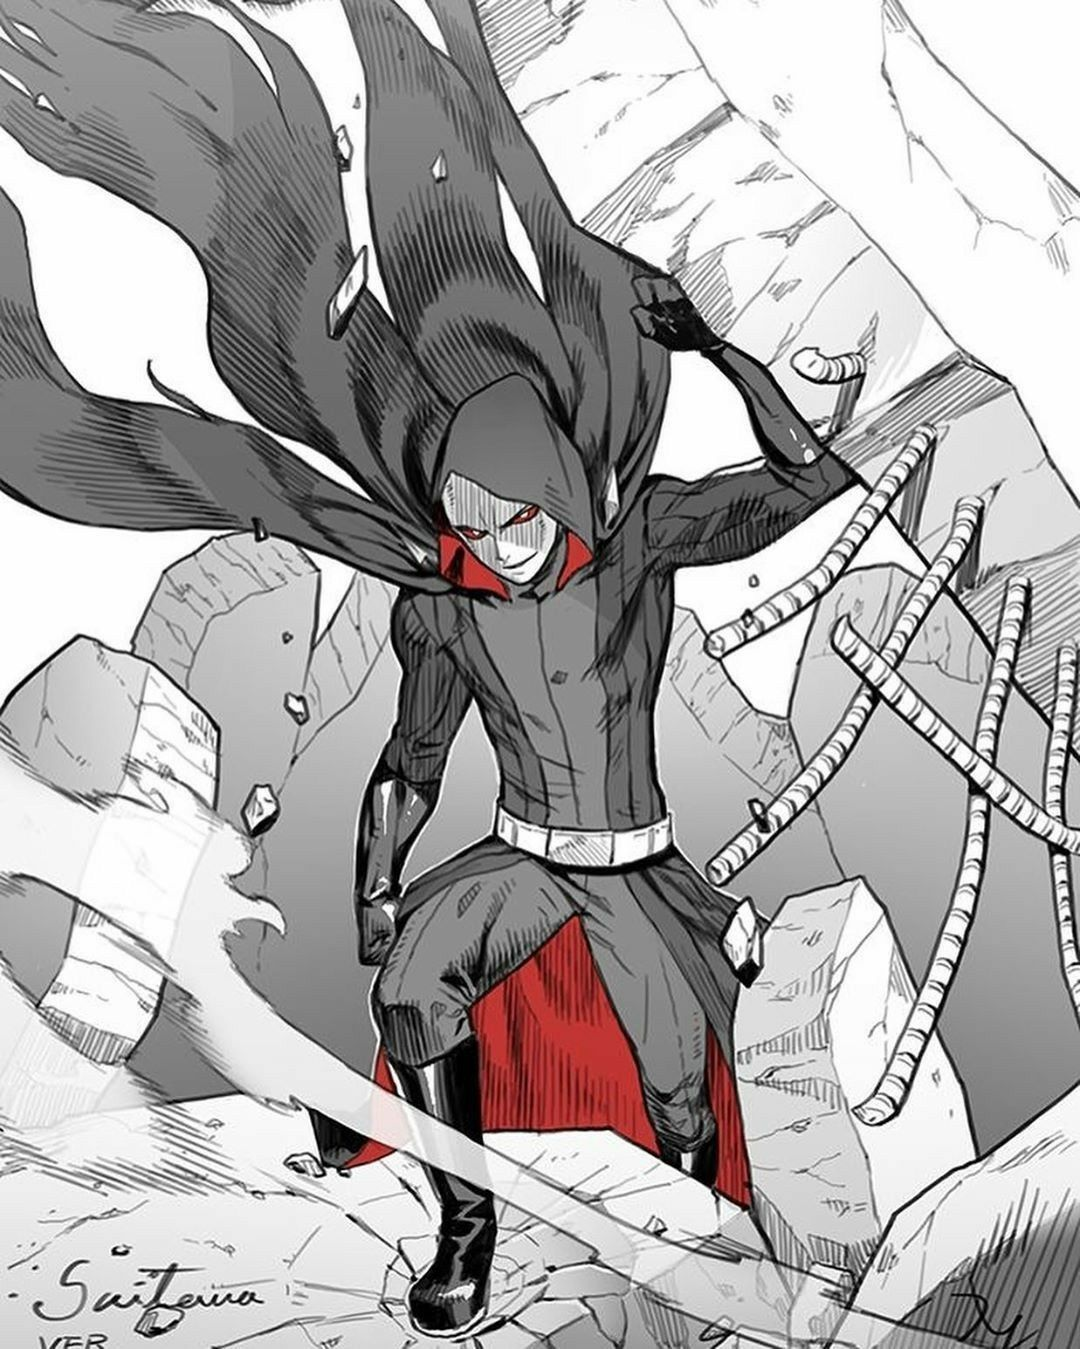 Pin by Anime on one punch man | Saitama one punch man, One ...